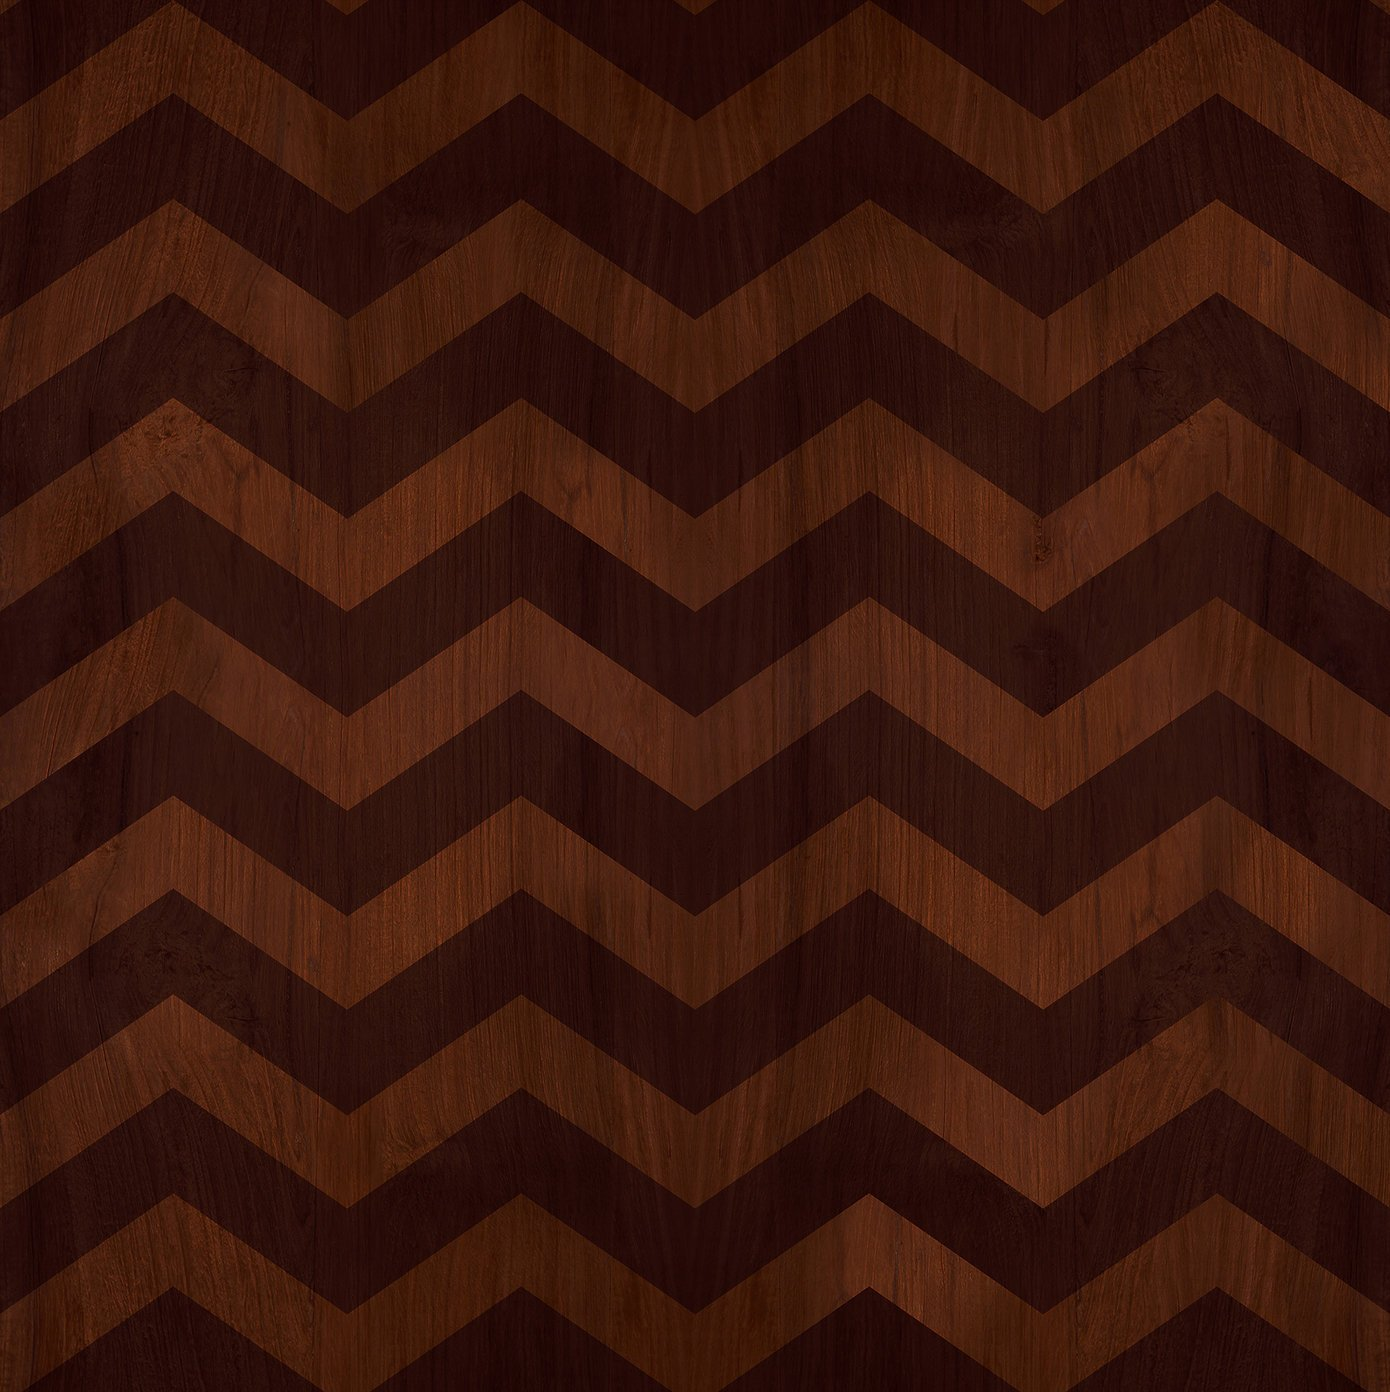 zig zag brown wood pattern